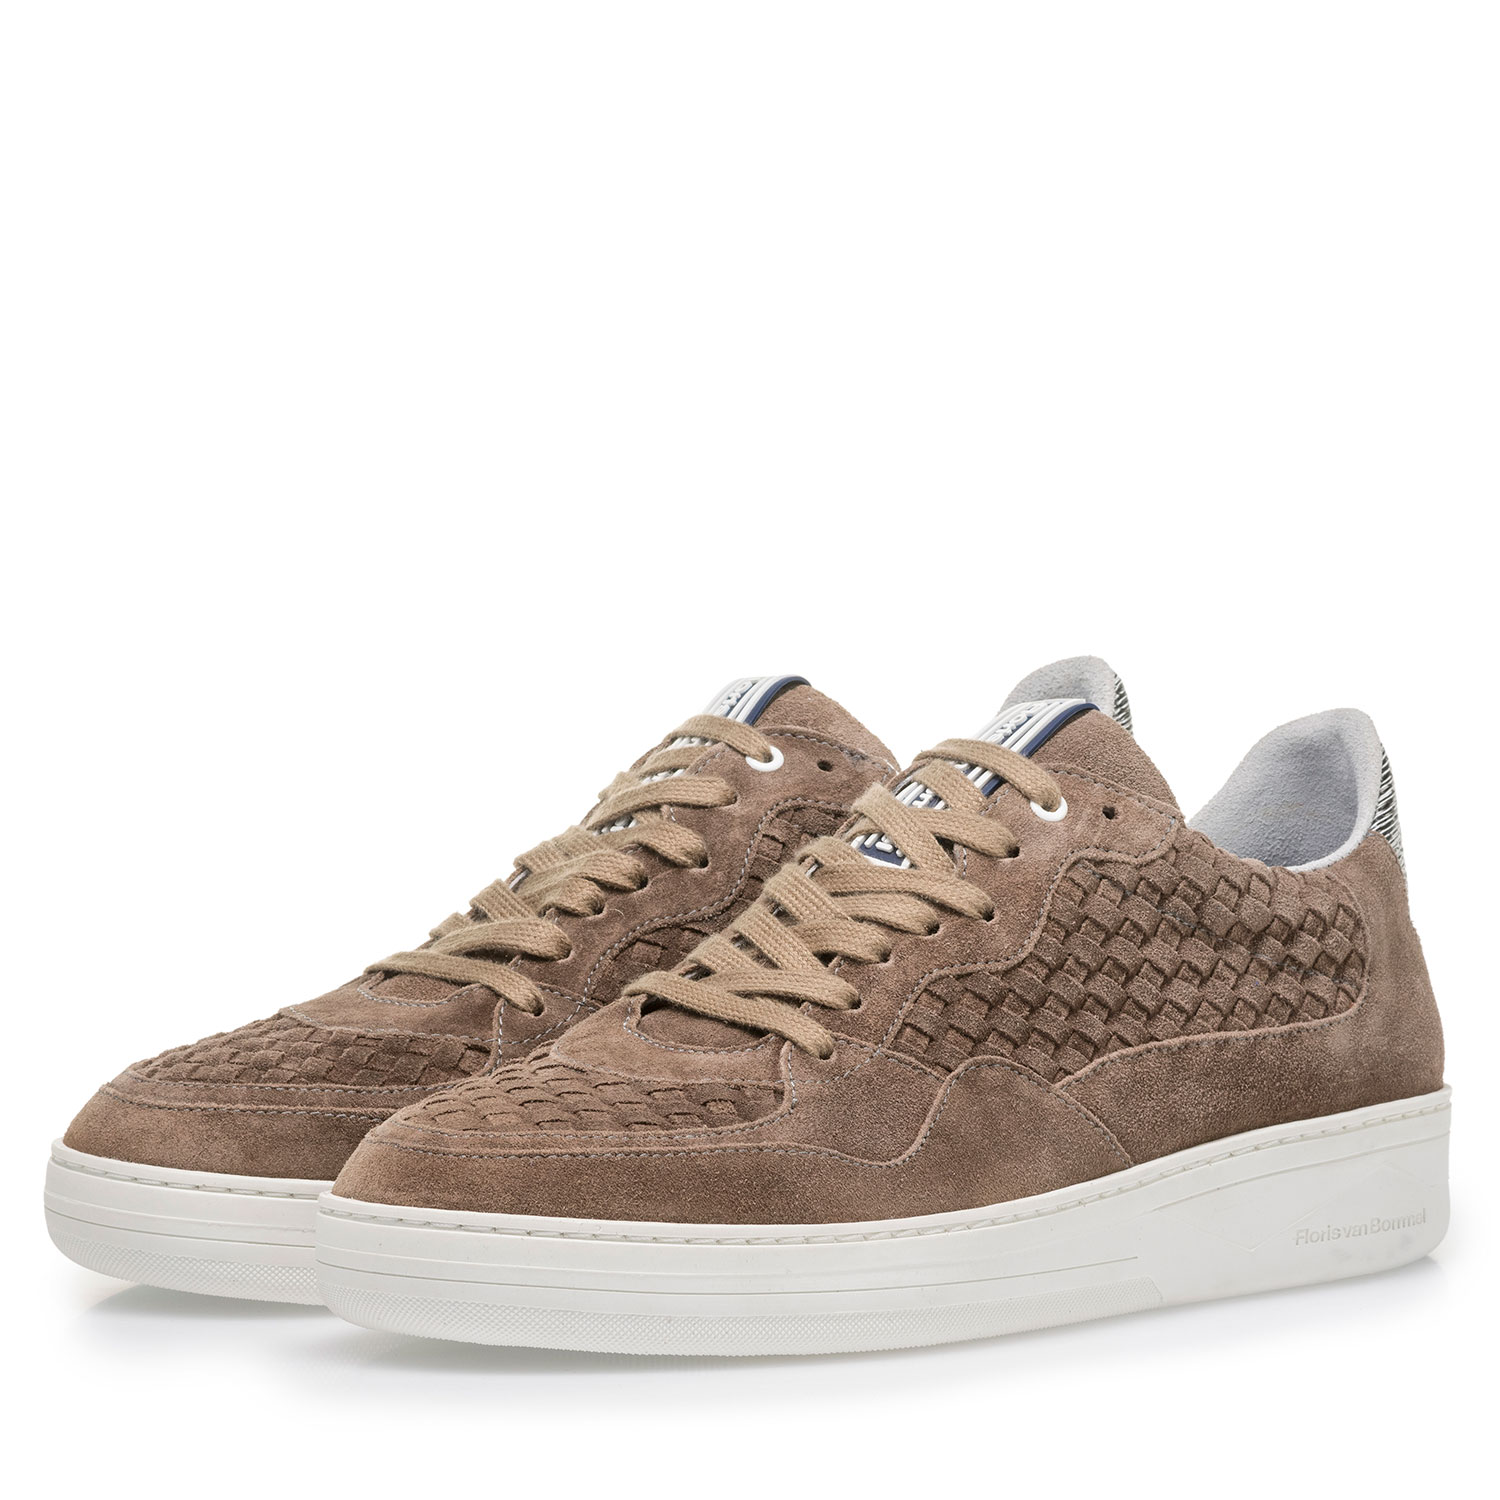 16265/01 - Taupe-coloured suede leather sneaker